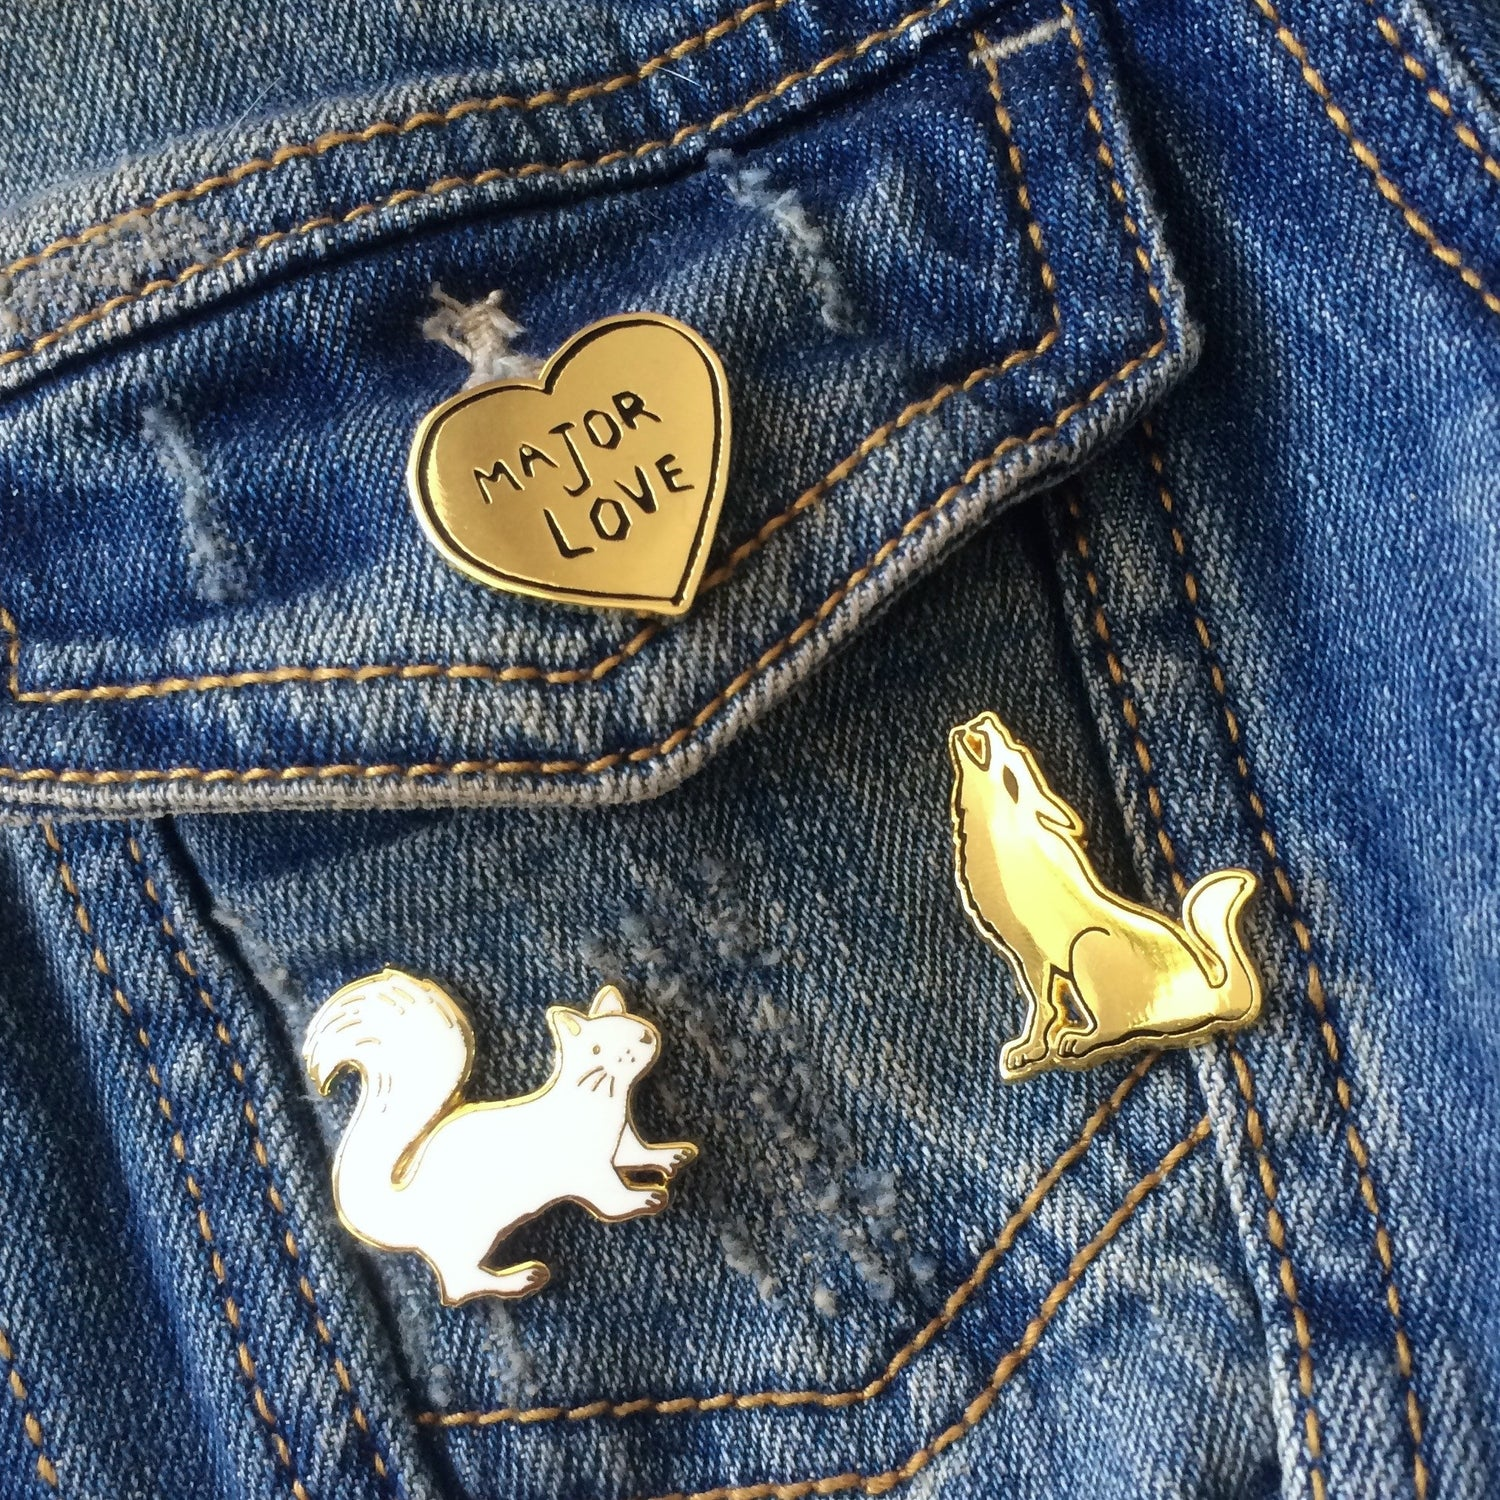 Major Love Heart Pin